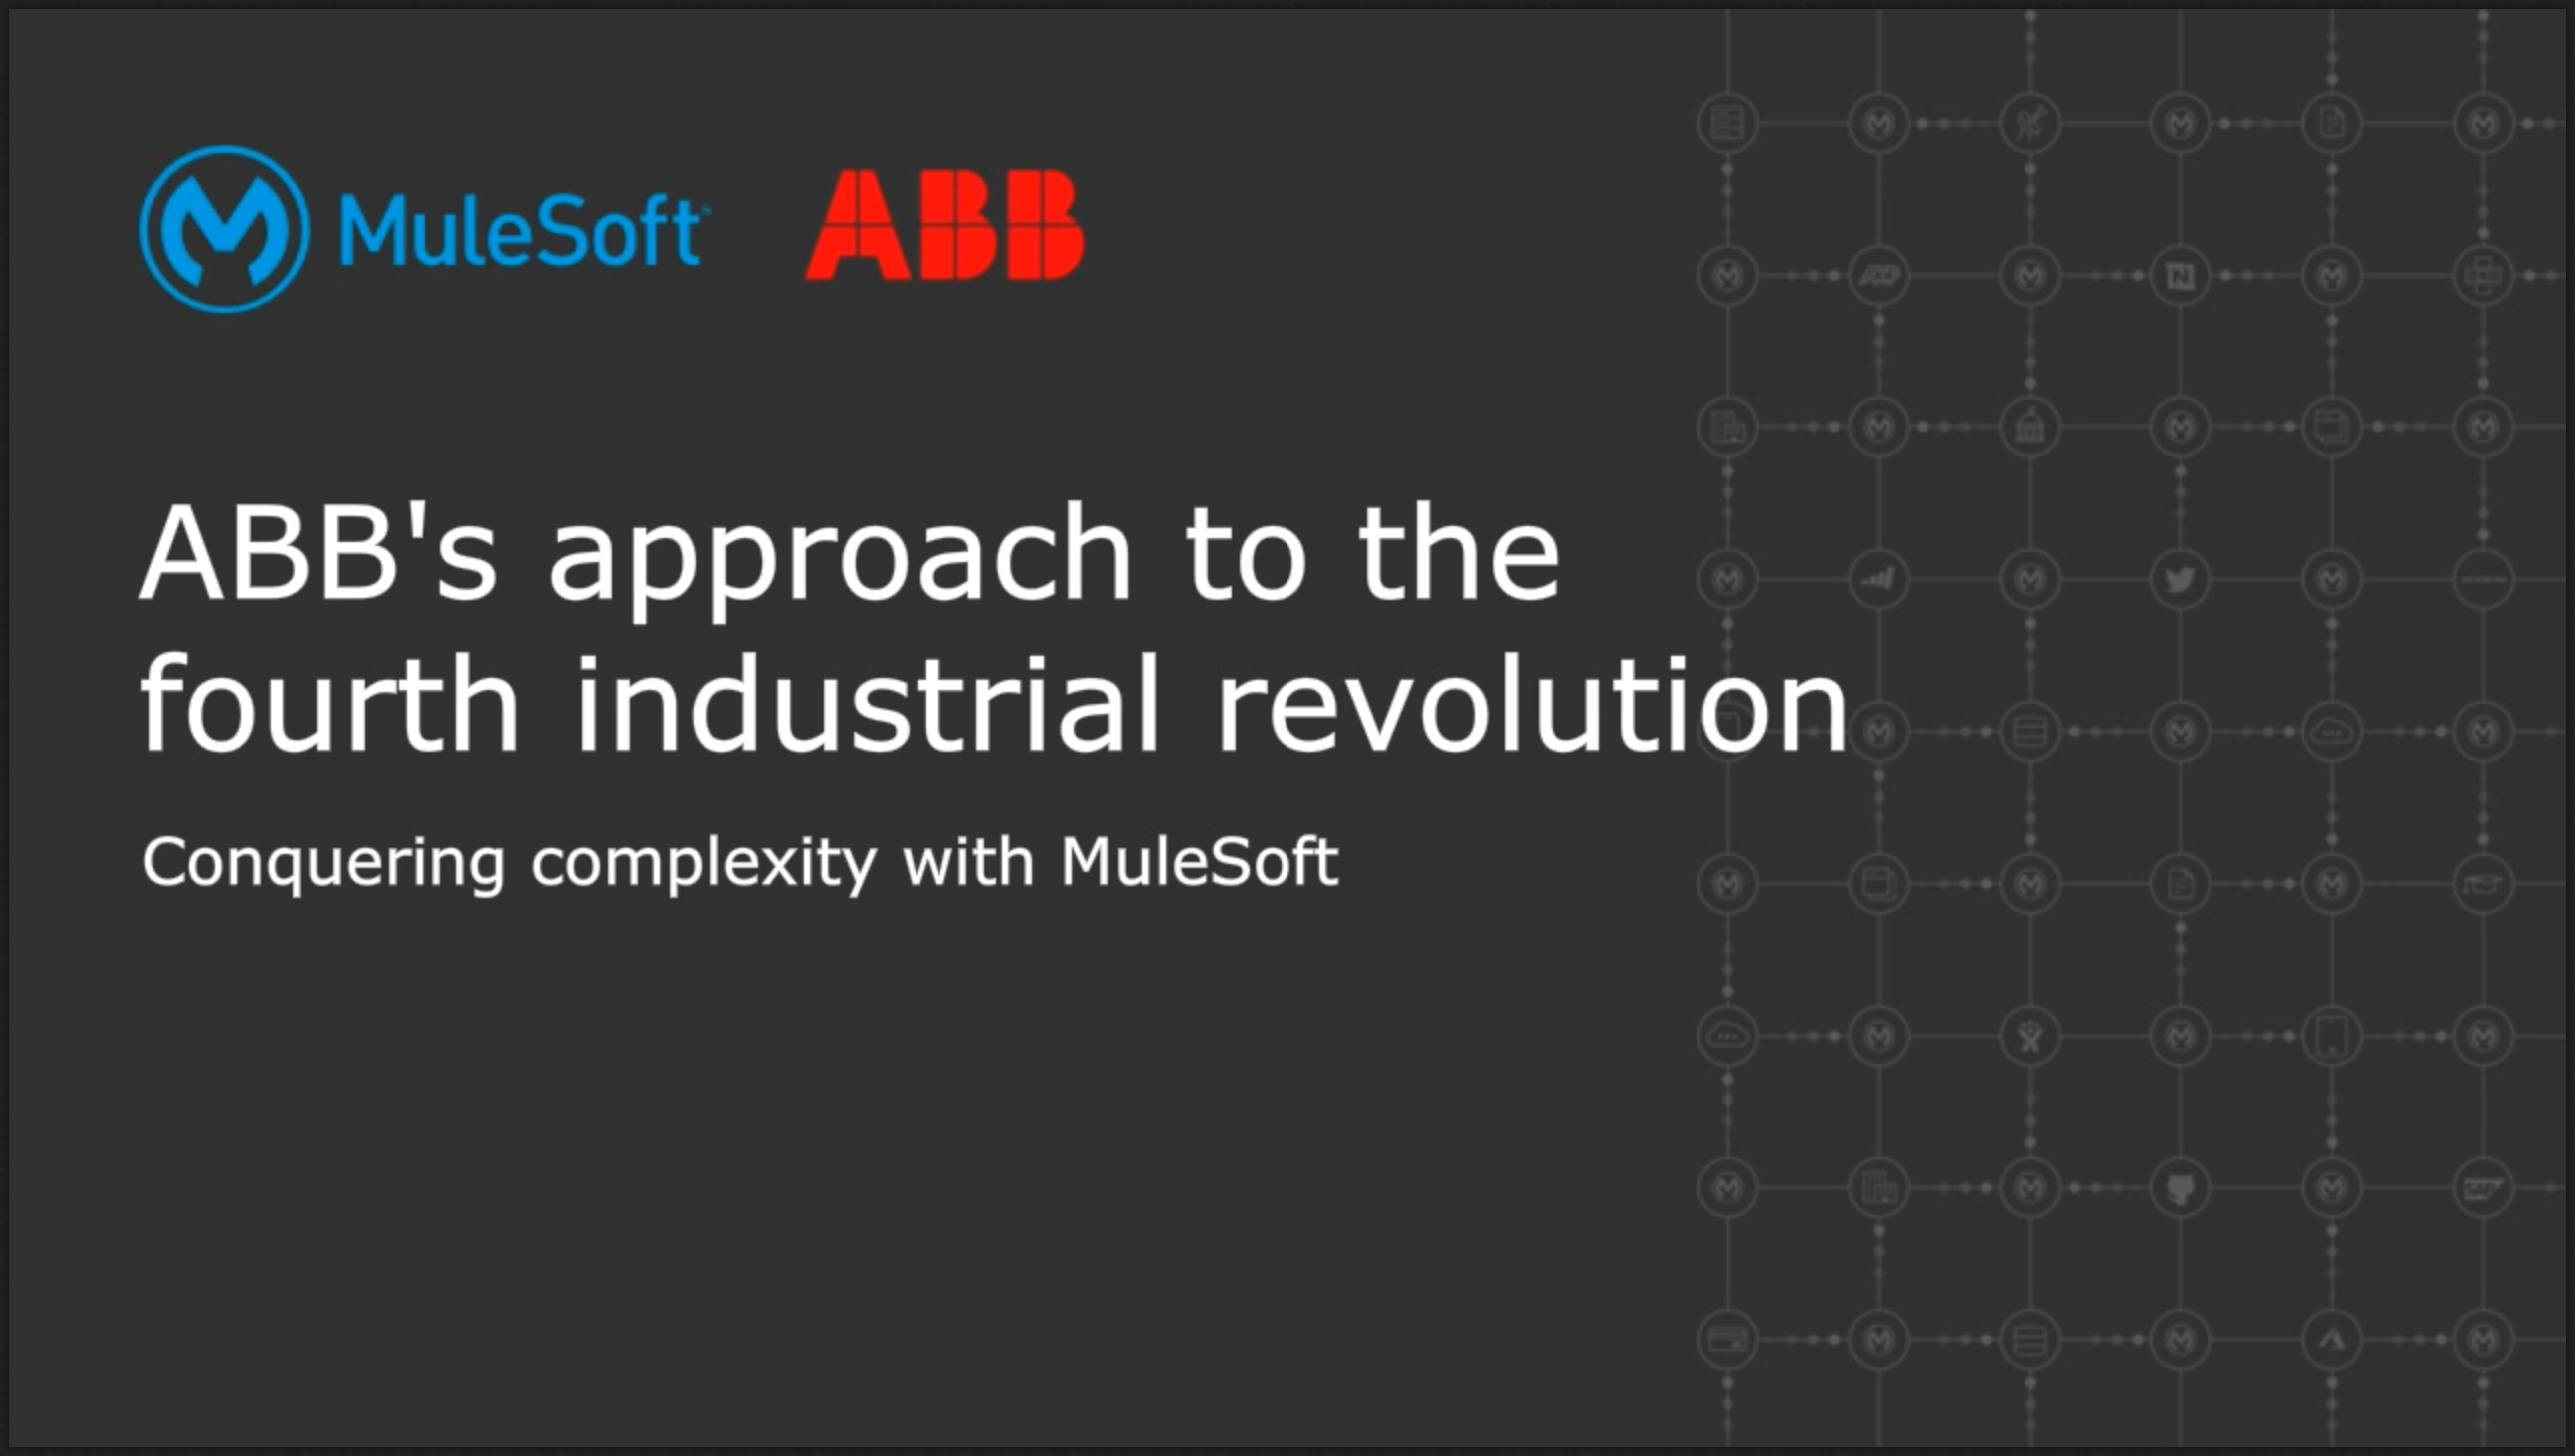 ABBs approach to the fourth industrial revolution